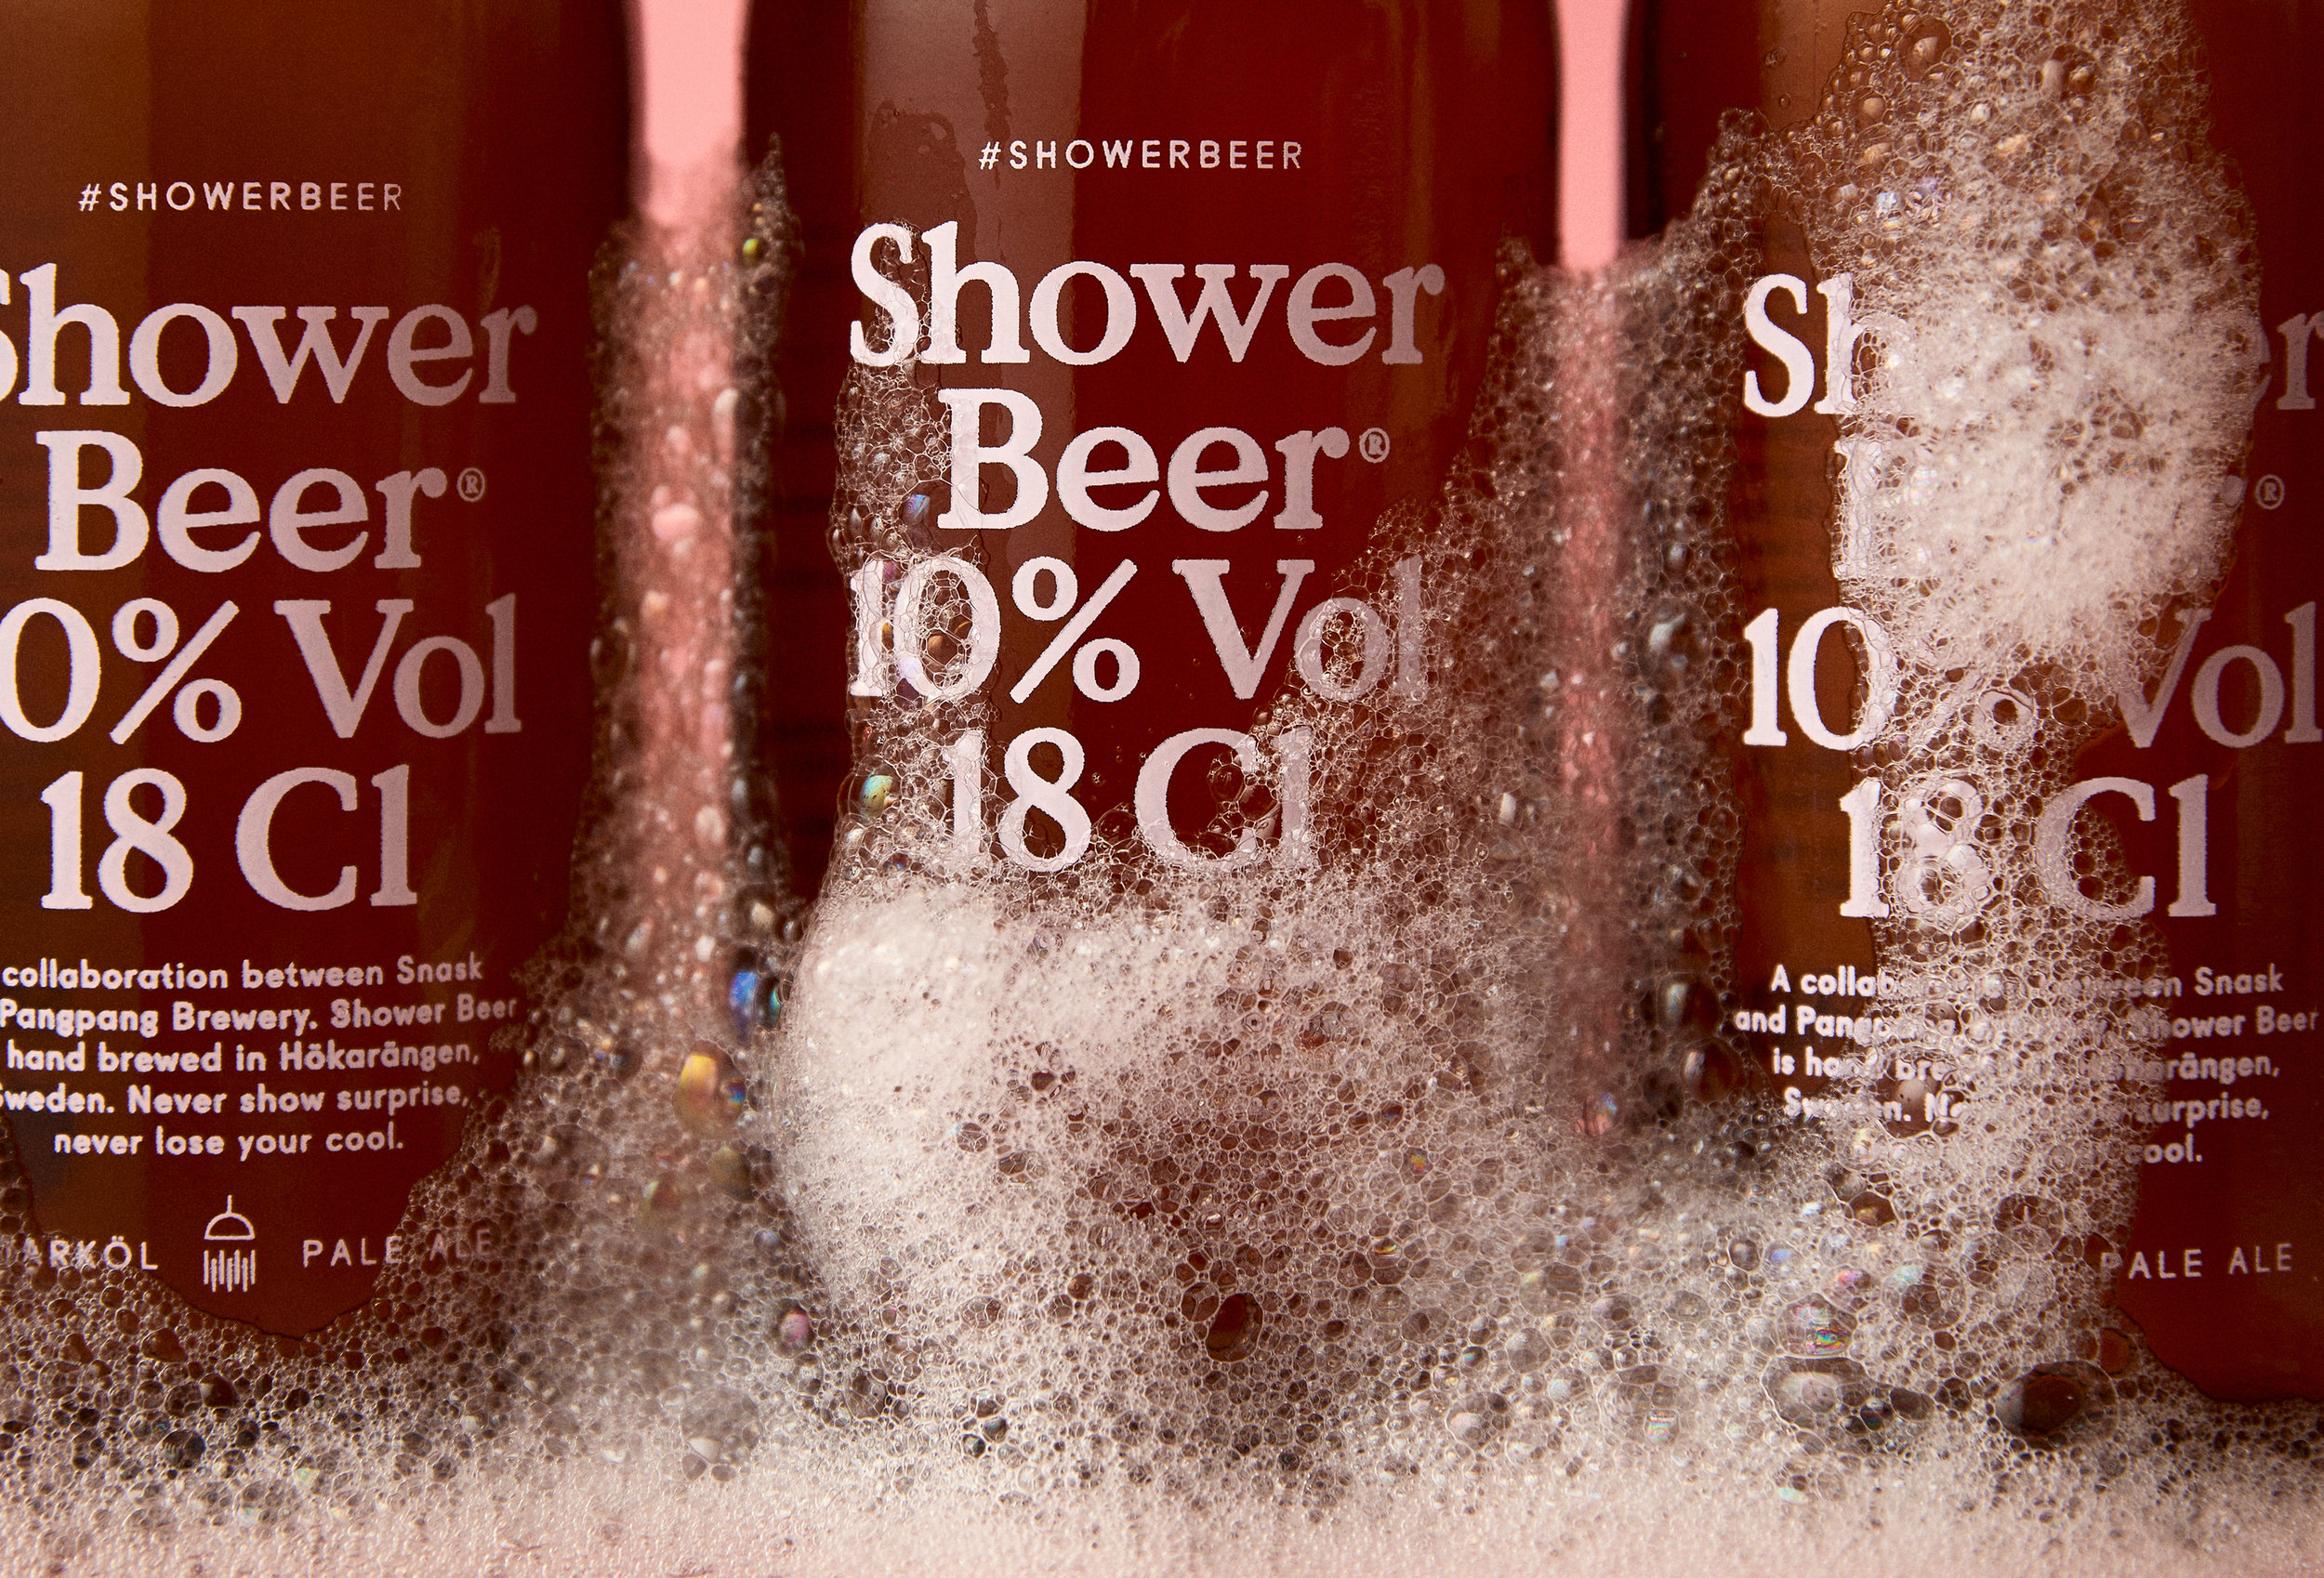 shower-beer_05_bottles-foam_close-up.jpg